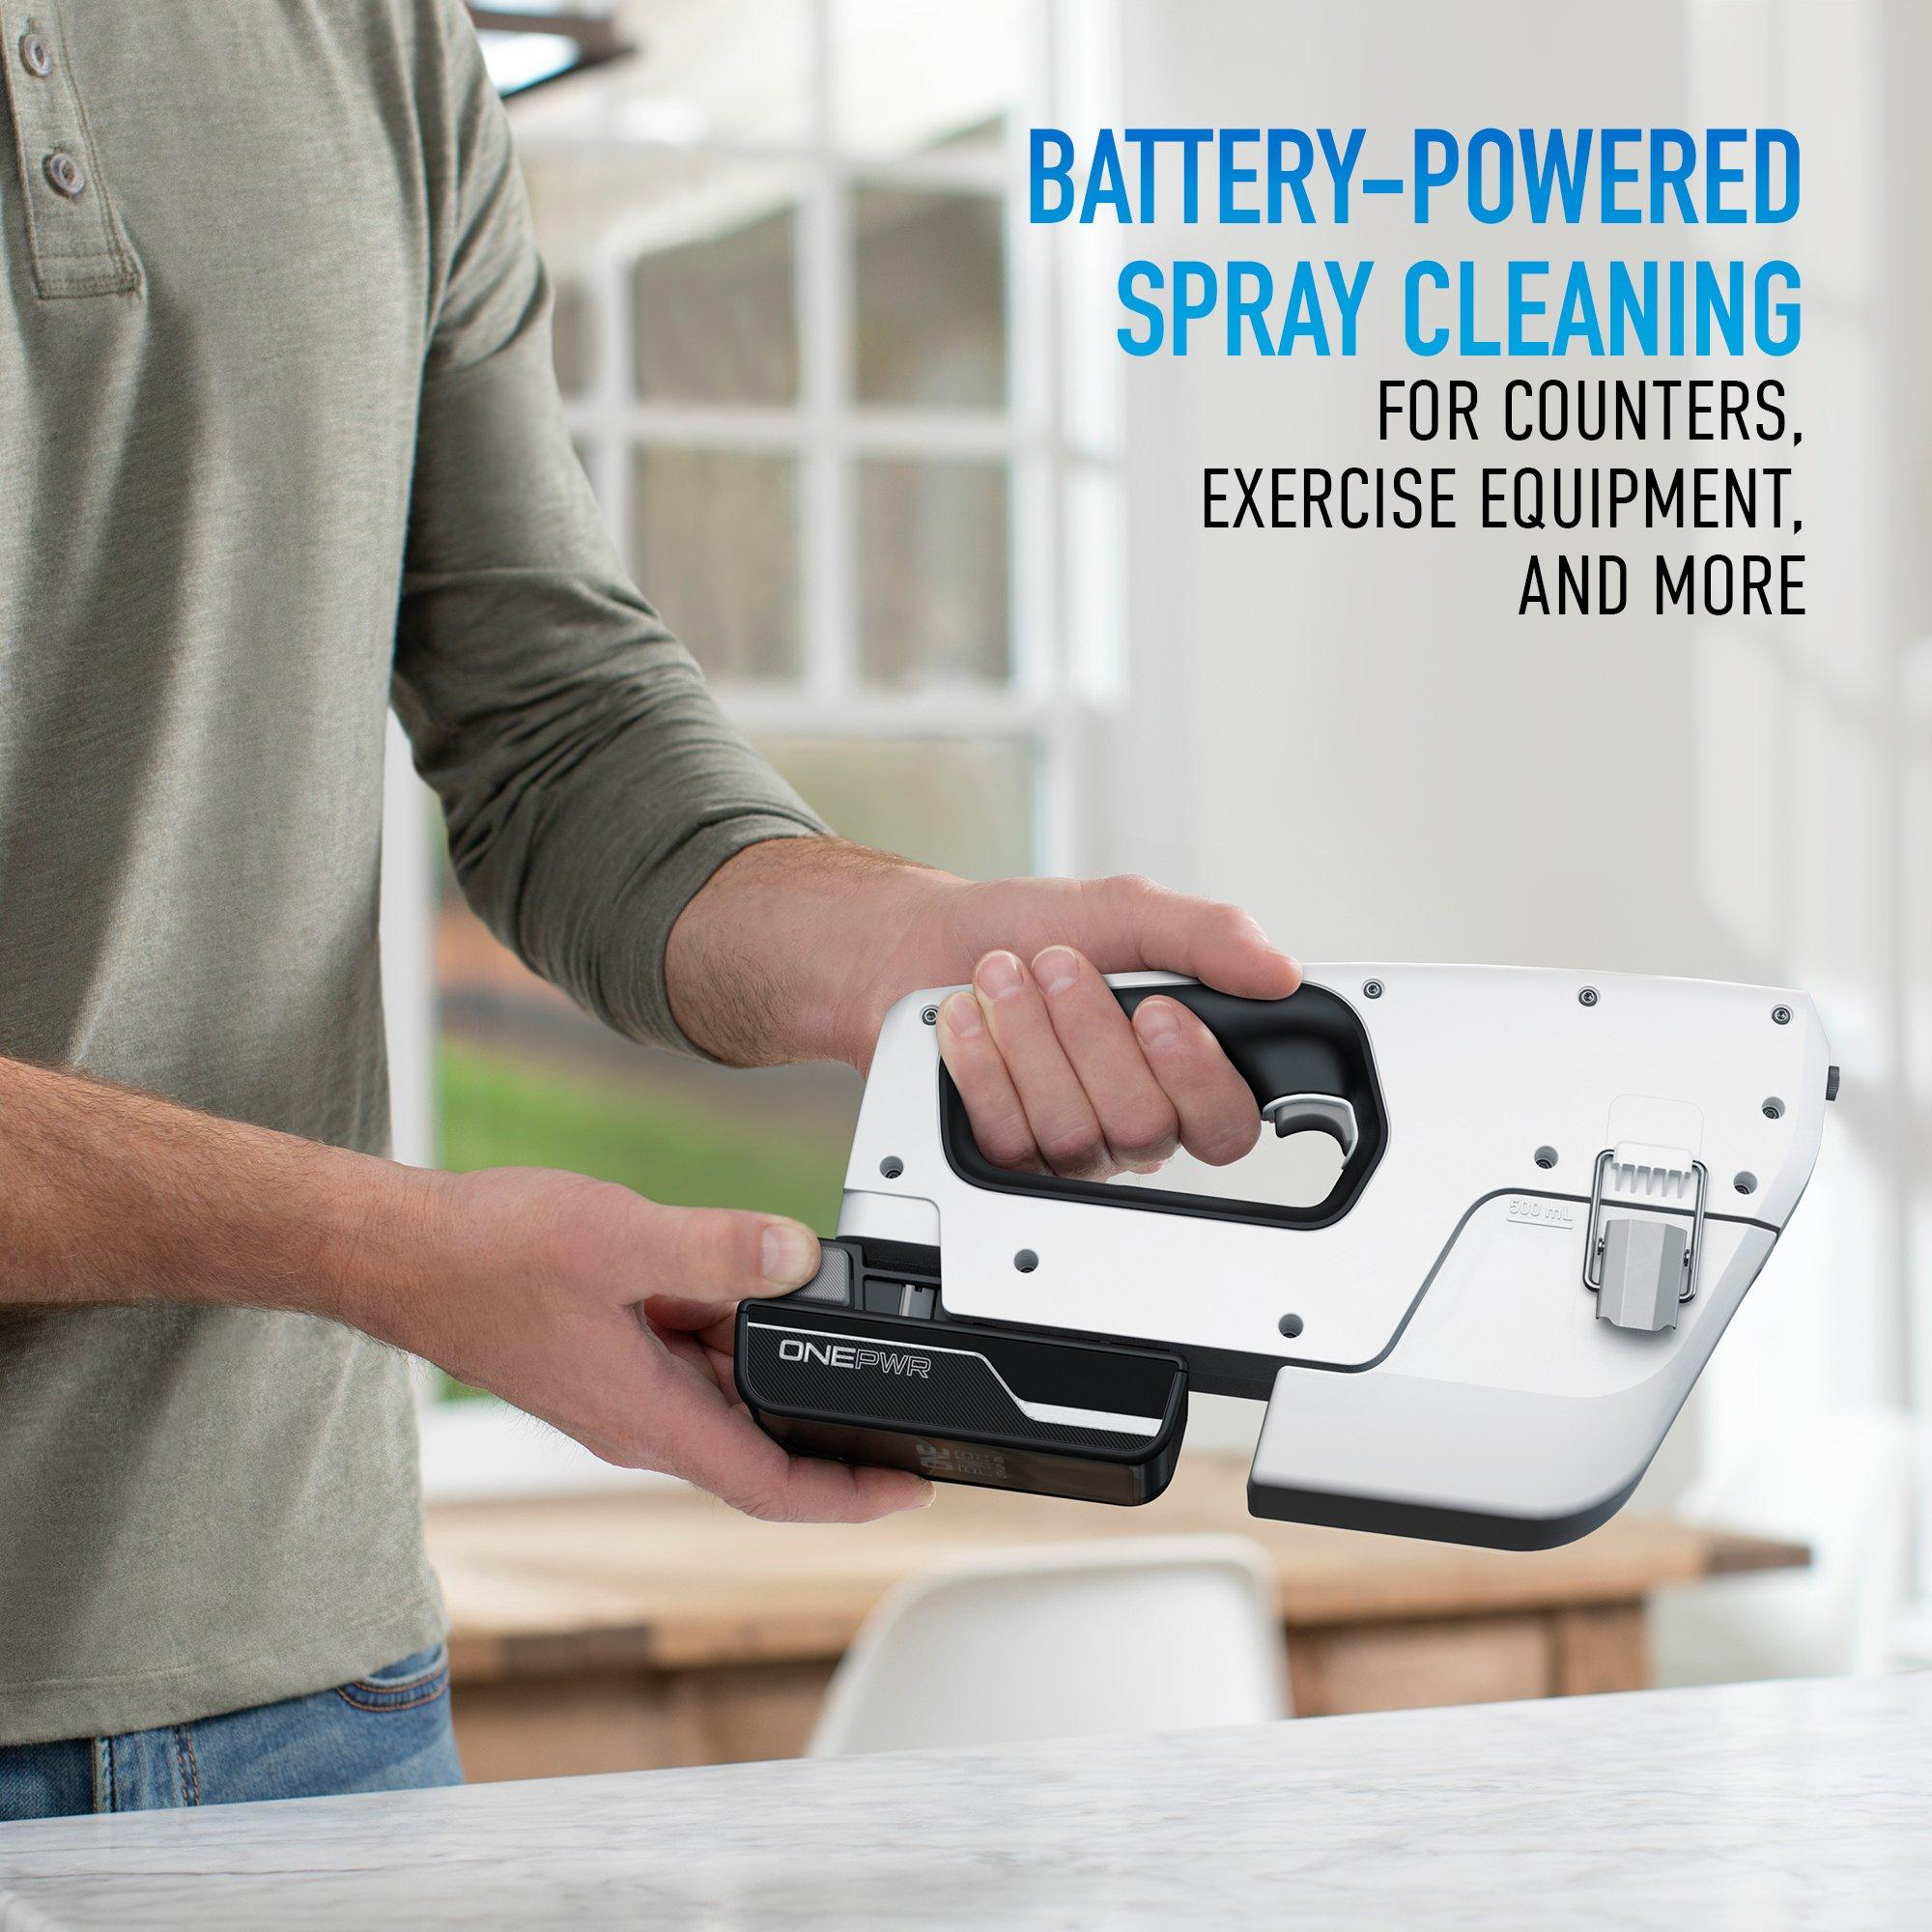 ONEPWR Handheld Sprayer with ONEPWR Rechargeable Battery2